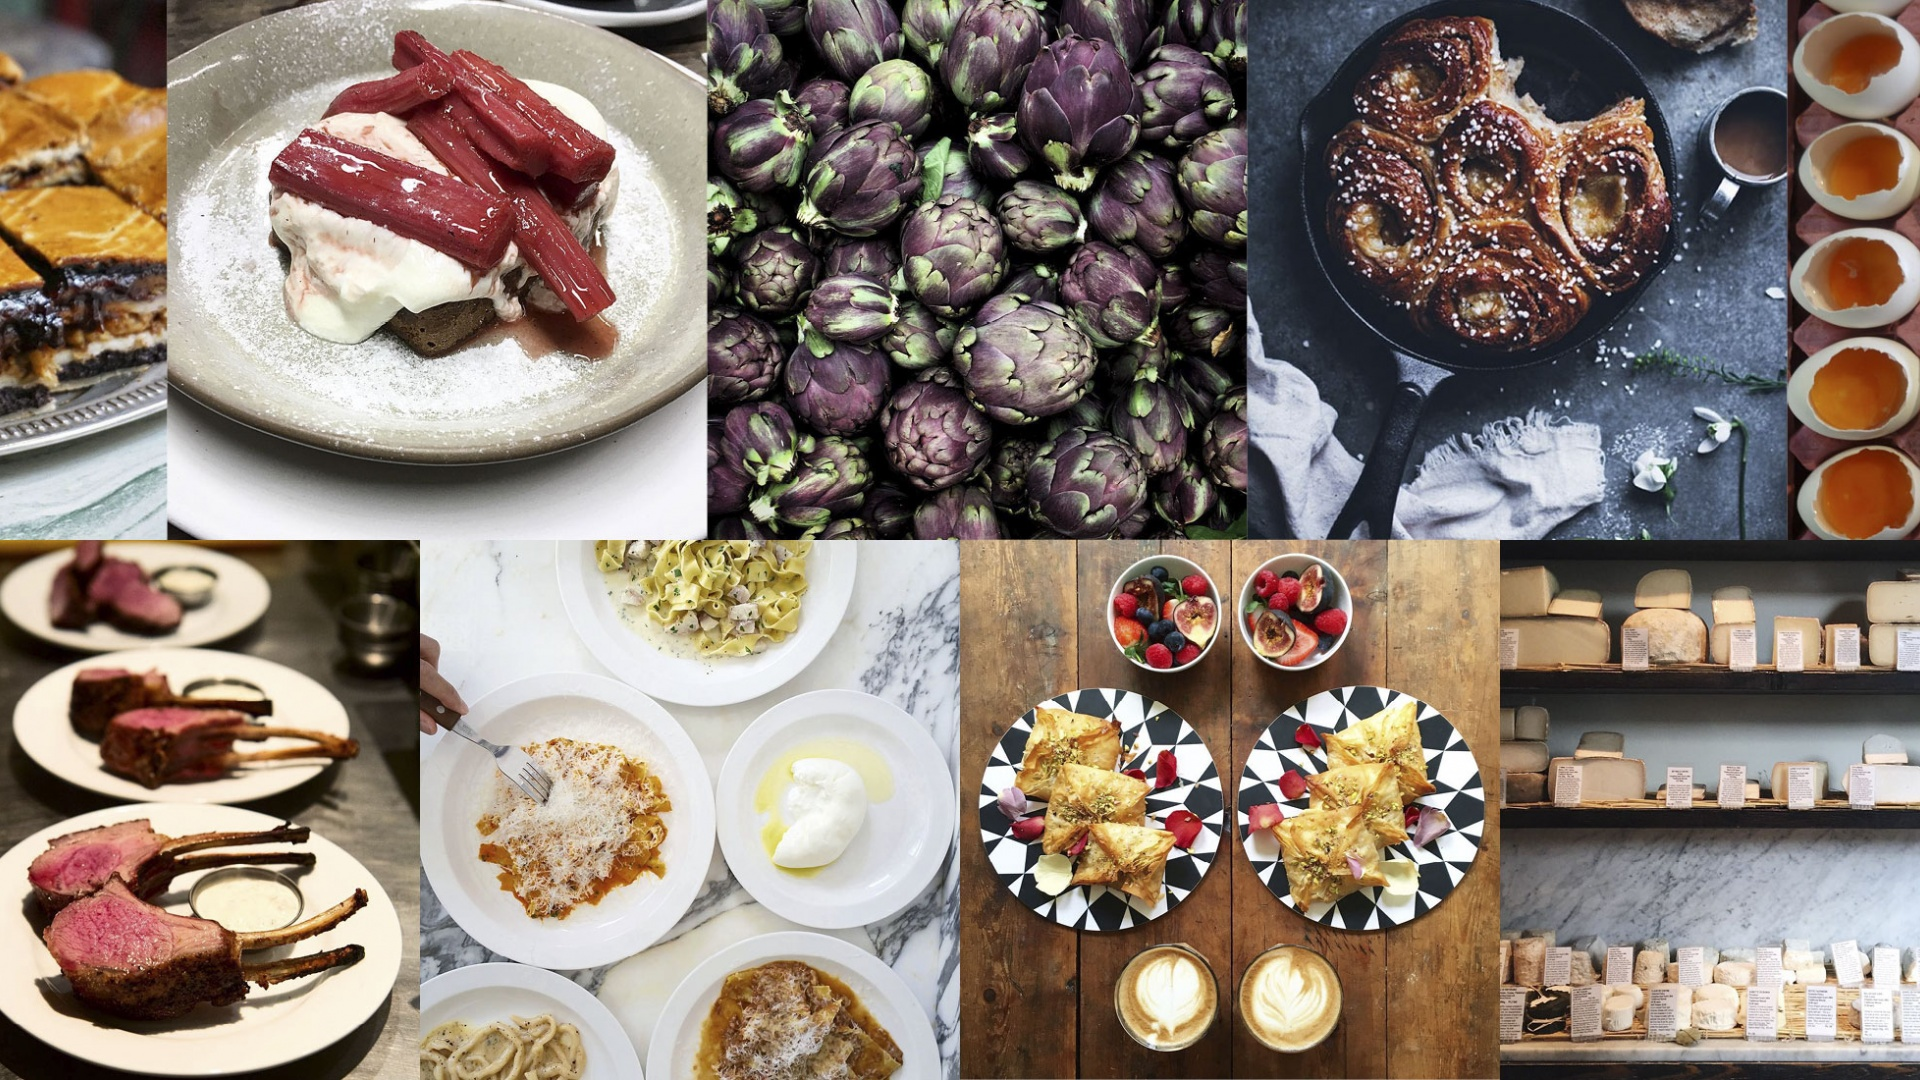 Instagrams to follow if you love food